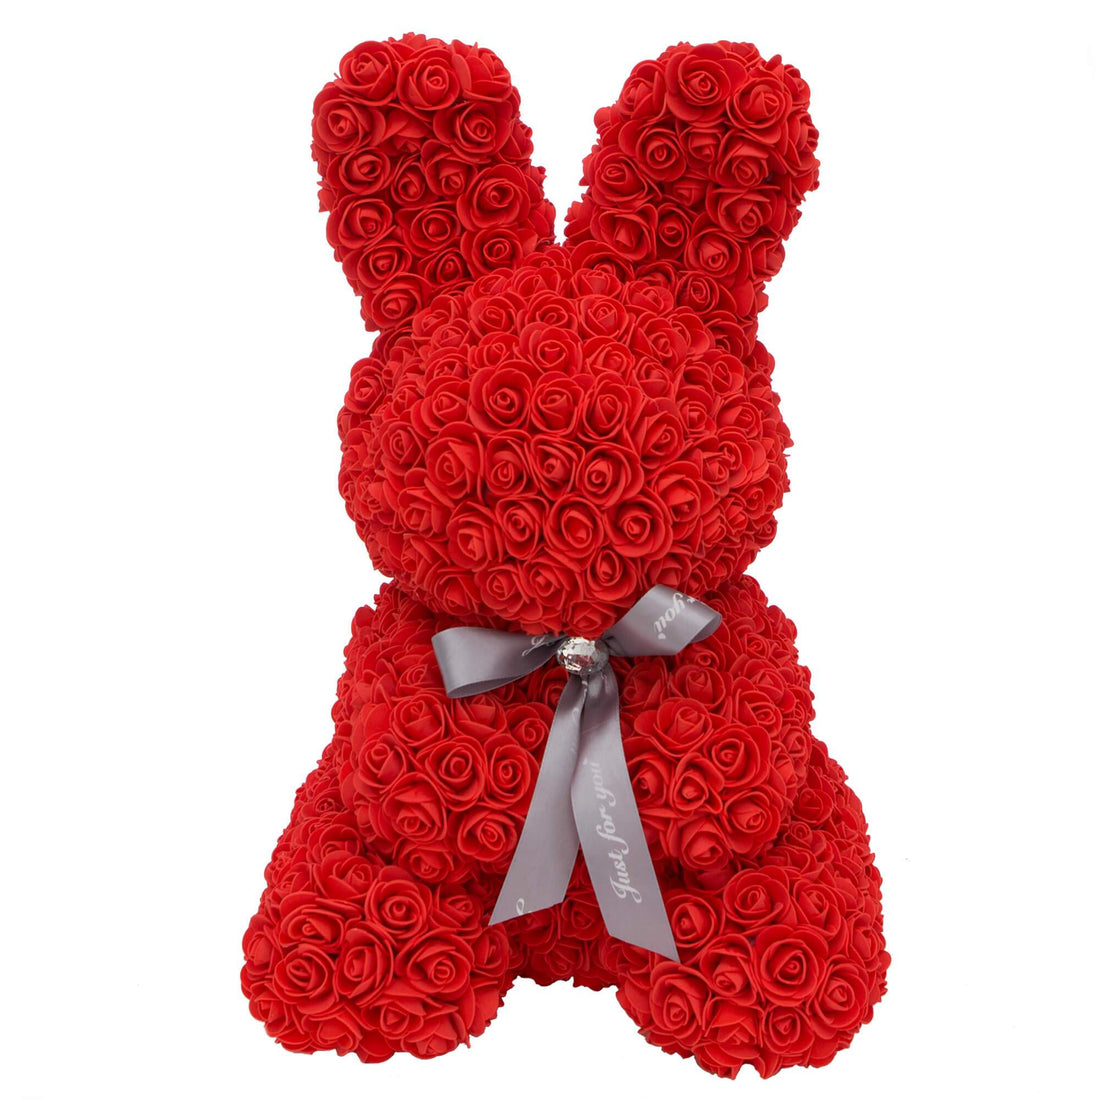 Red Rose Bunny